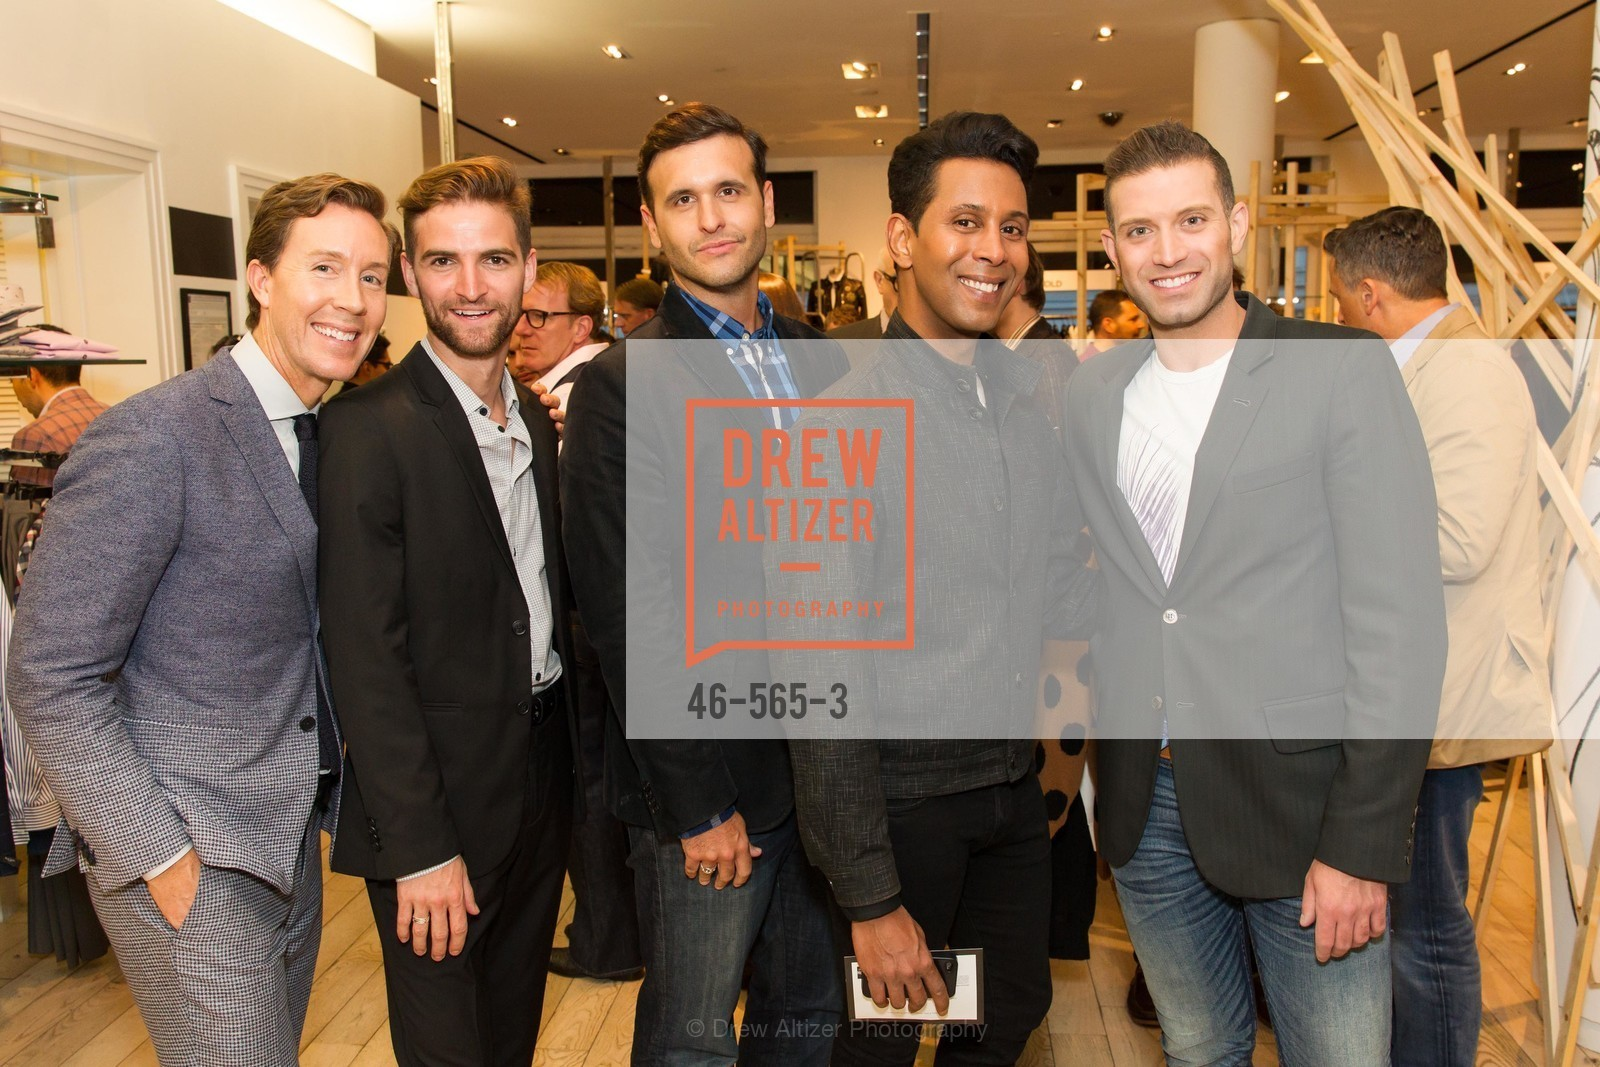 Eric Jennings, JD Scalzo, Emillio Mesa, Omar Sharif Jr., GLAAD GALA Kick-Off Party Hosted by SAKS FIFTH AVENUE, Saks Fifth Avenue. 384 Post Street, September 12th, 2014,Drew Altizer, Drew Altizer Photography, full-service agency, private events, San Francisco photographer, photographer california